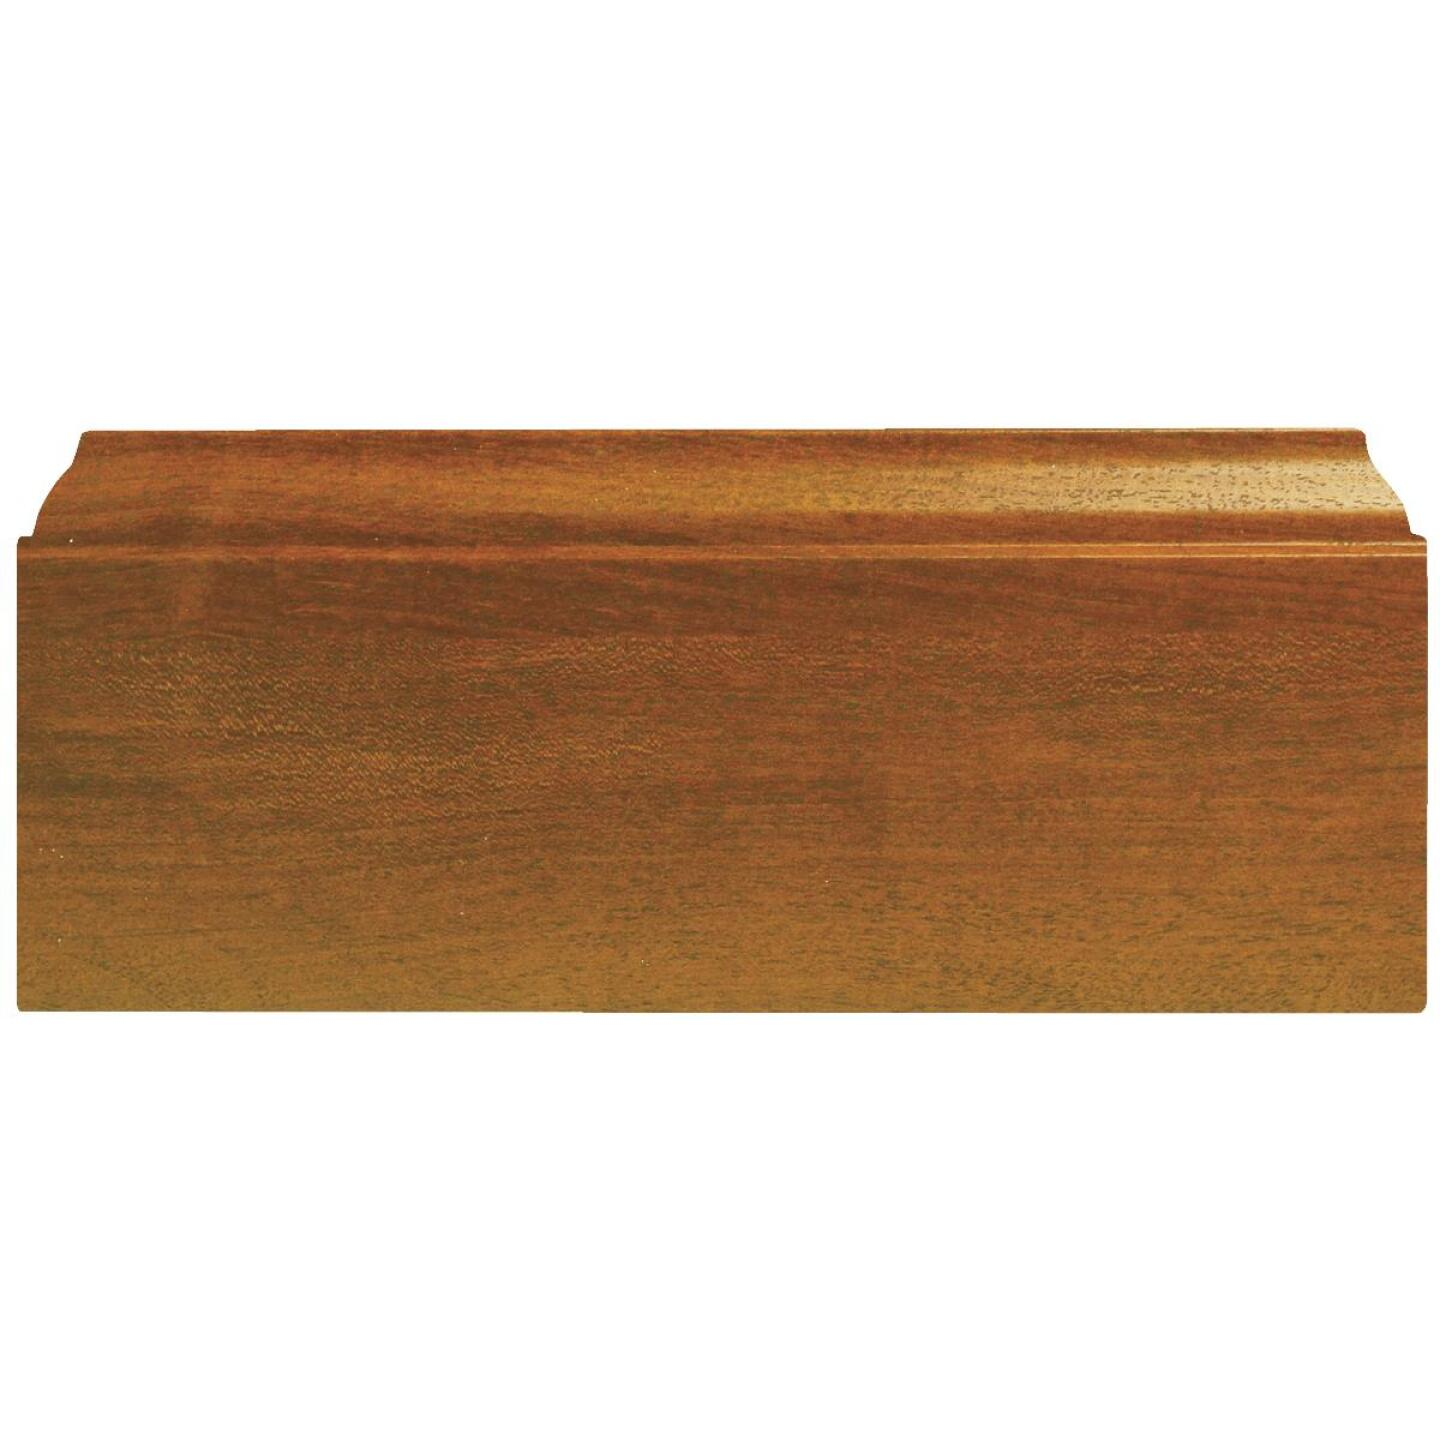 Inteplast Building Products 1/2 In. W. x 3-7/16 In. H. x 8 Ft. L. Independence Cherry Polystyrene Colonial Base Molding Image 3